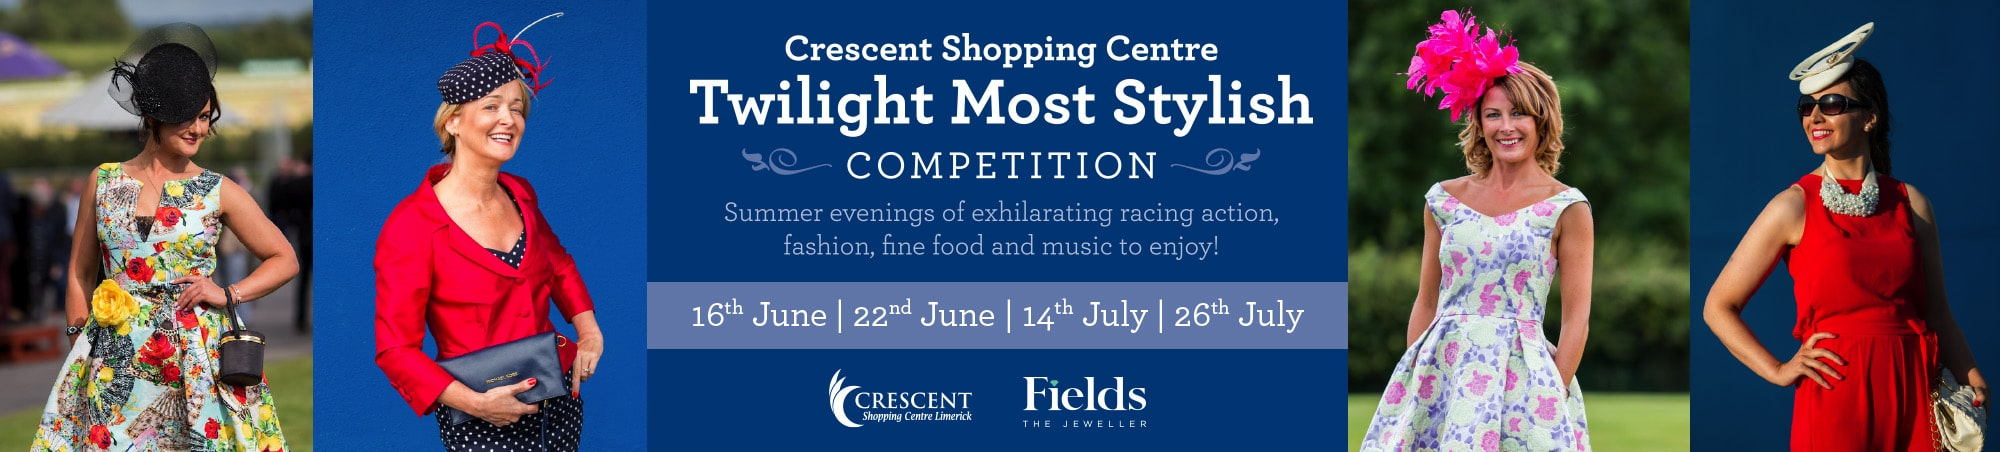 Crescent-Shopping-Centre-Twilight-Most-Stylish